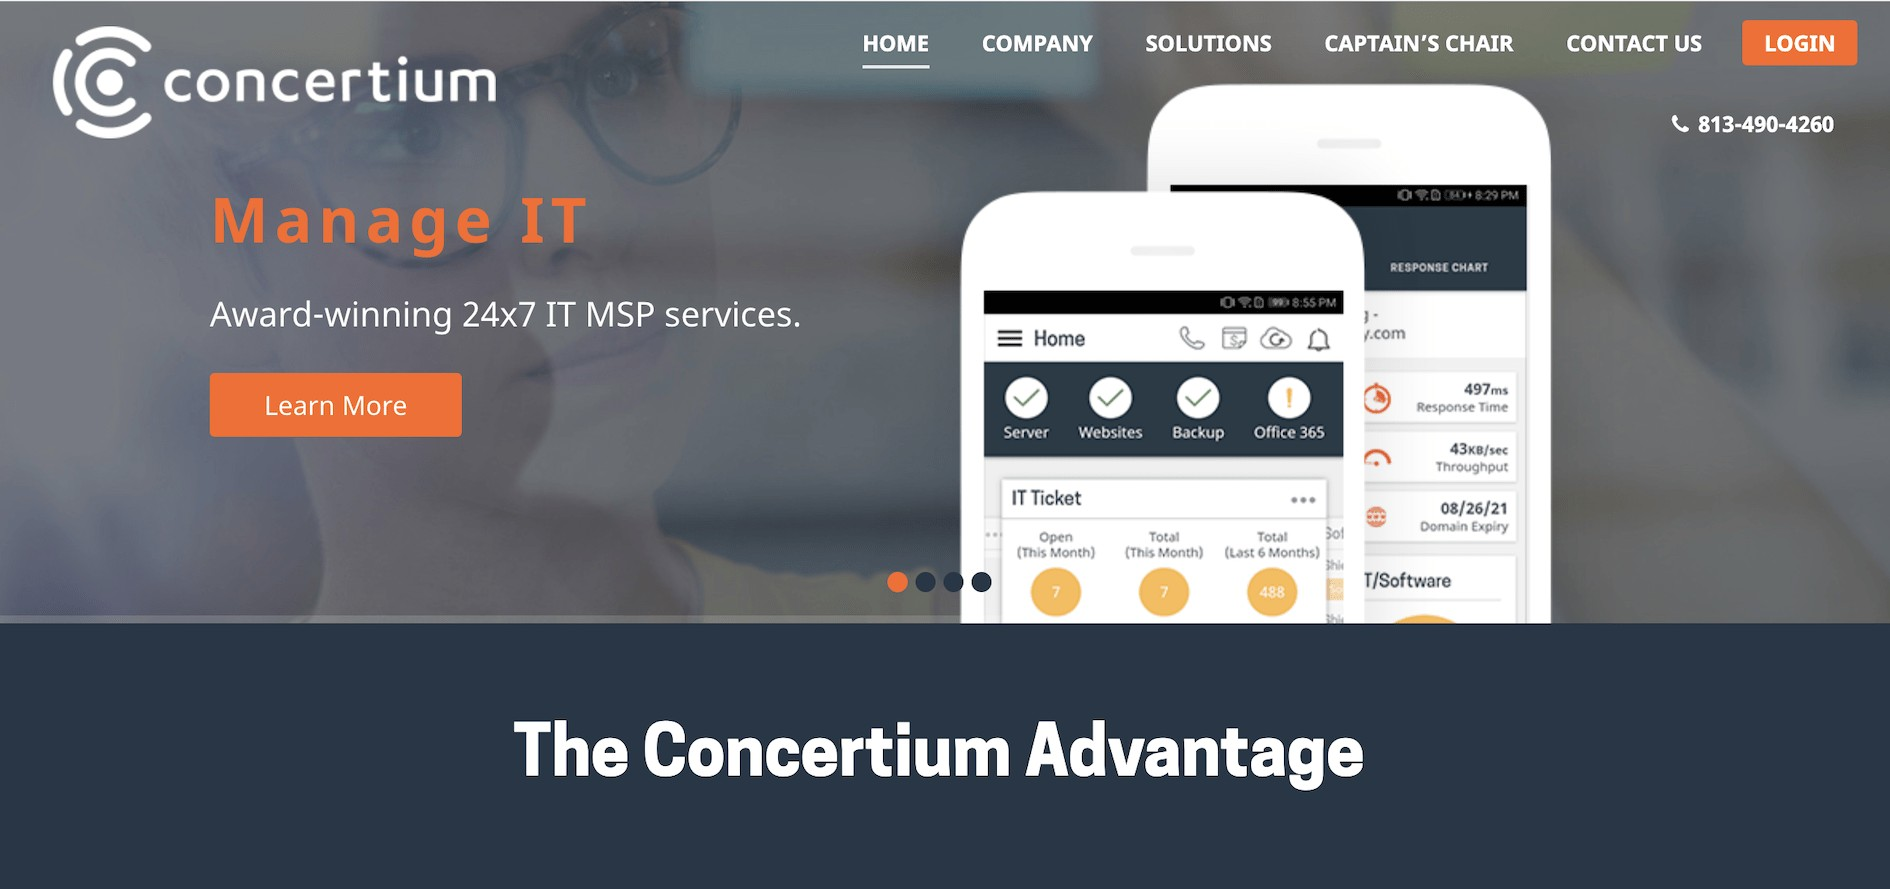 Using Hubstaff to Manage an Agency Team of 90 Employees: Concertium Case Study